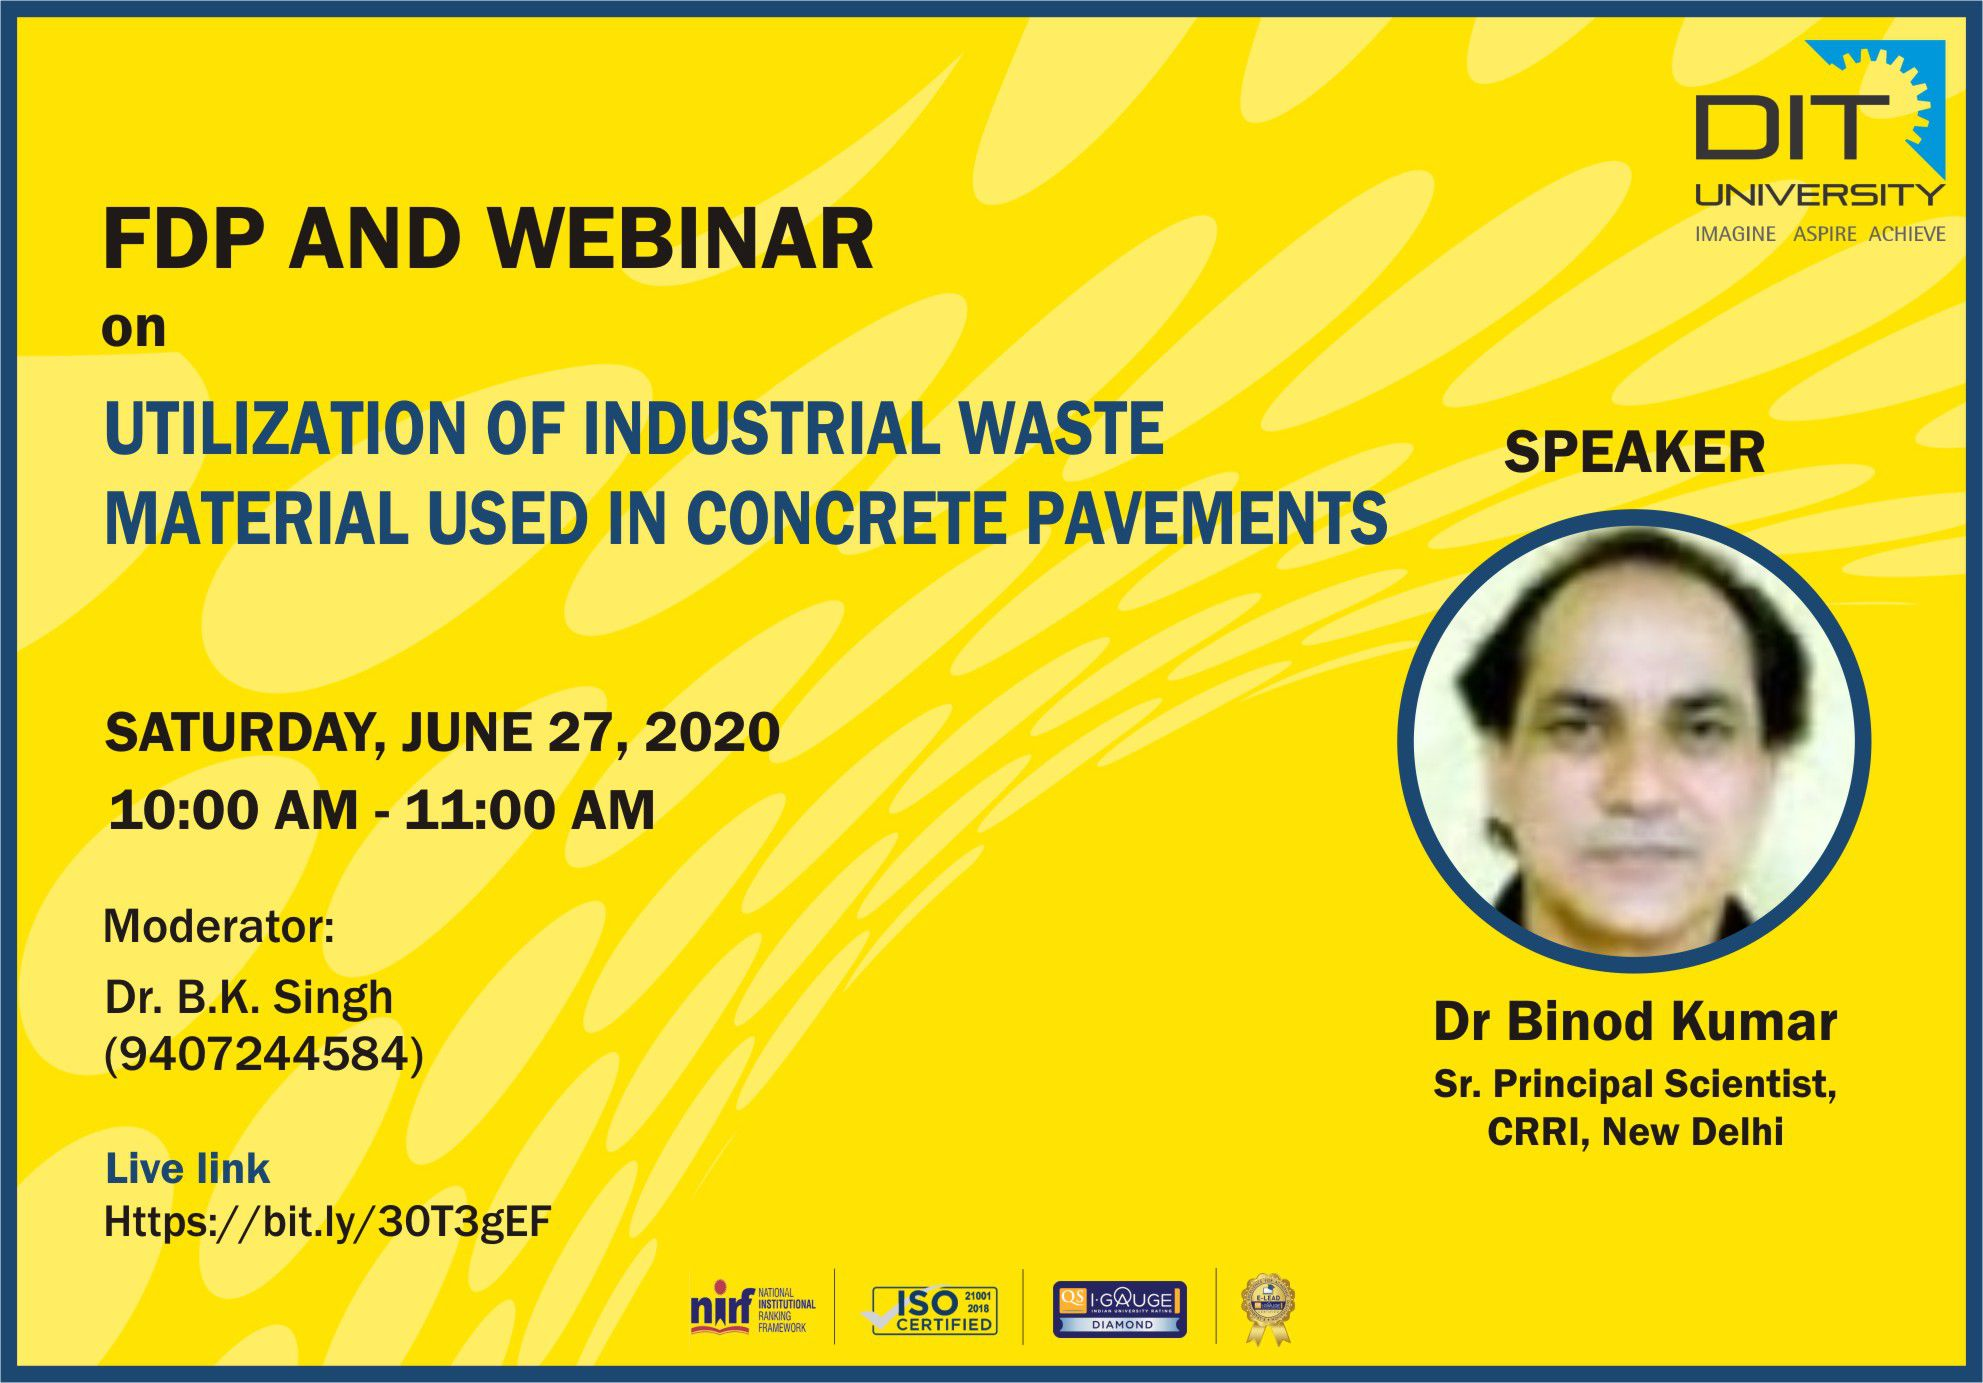 Webinar on 'Utilization of Industrial Waste Material used in Concrete Pavements'